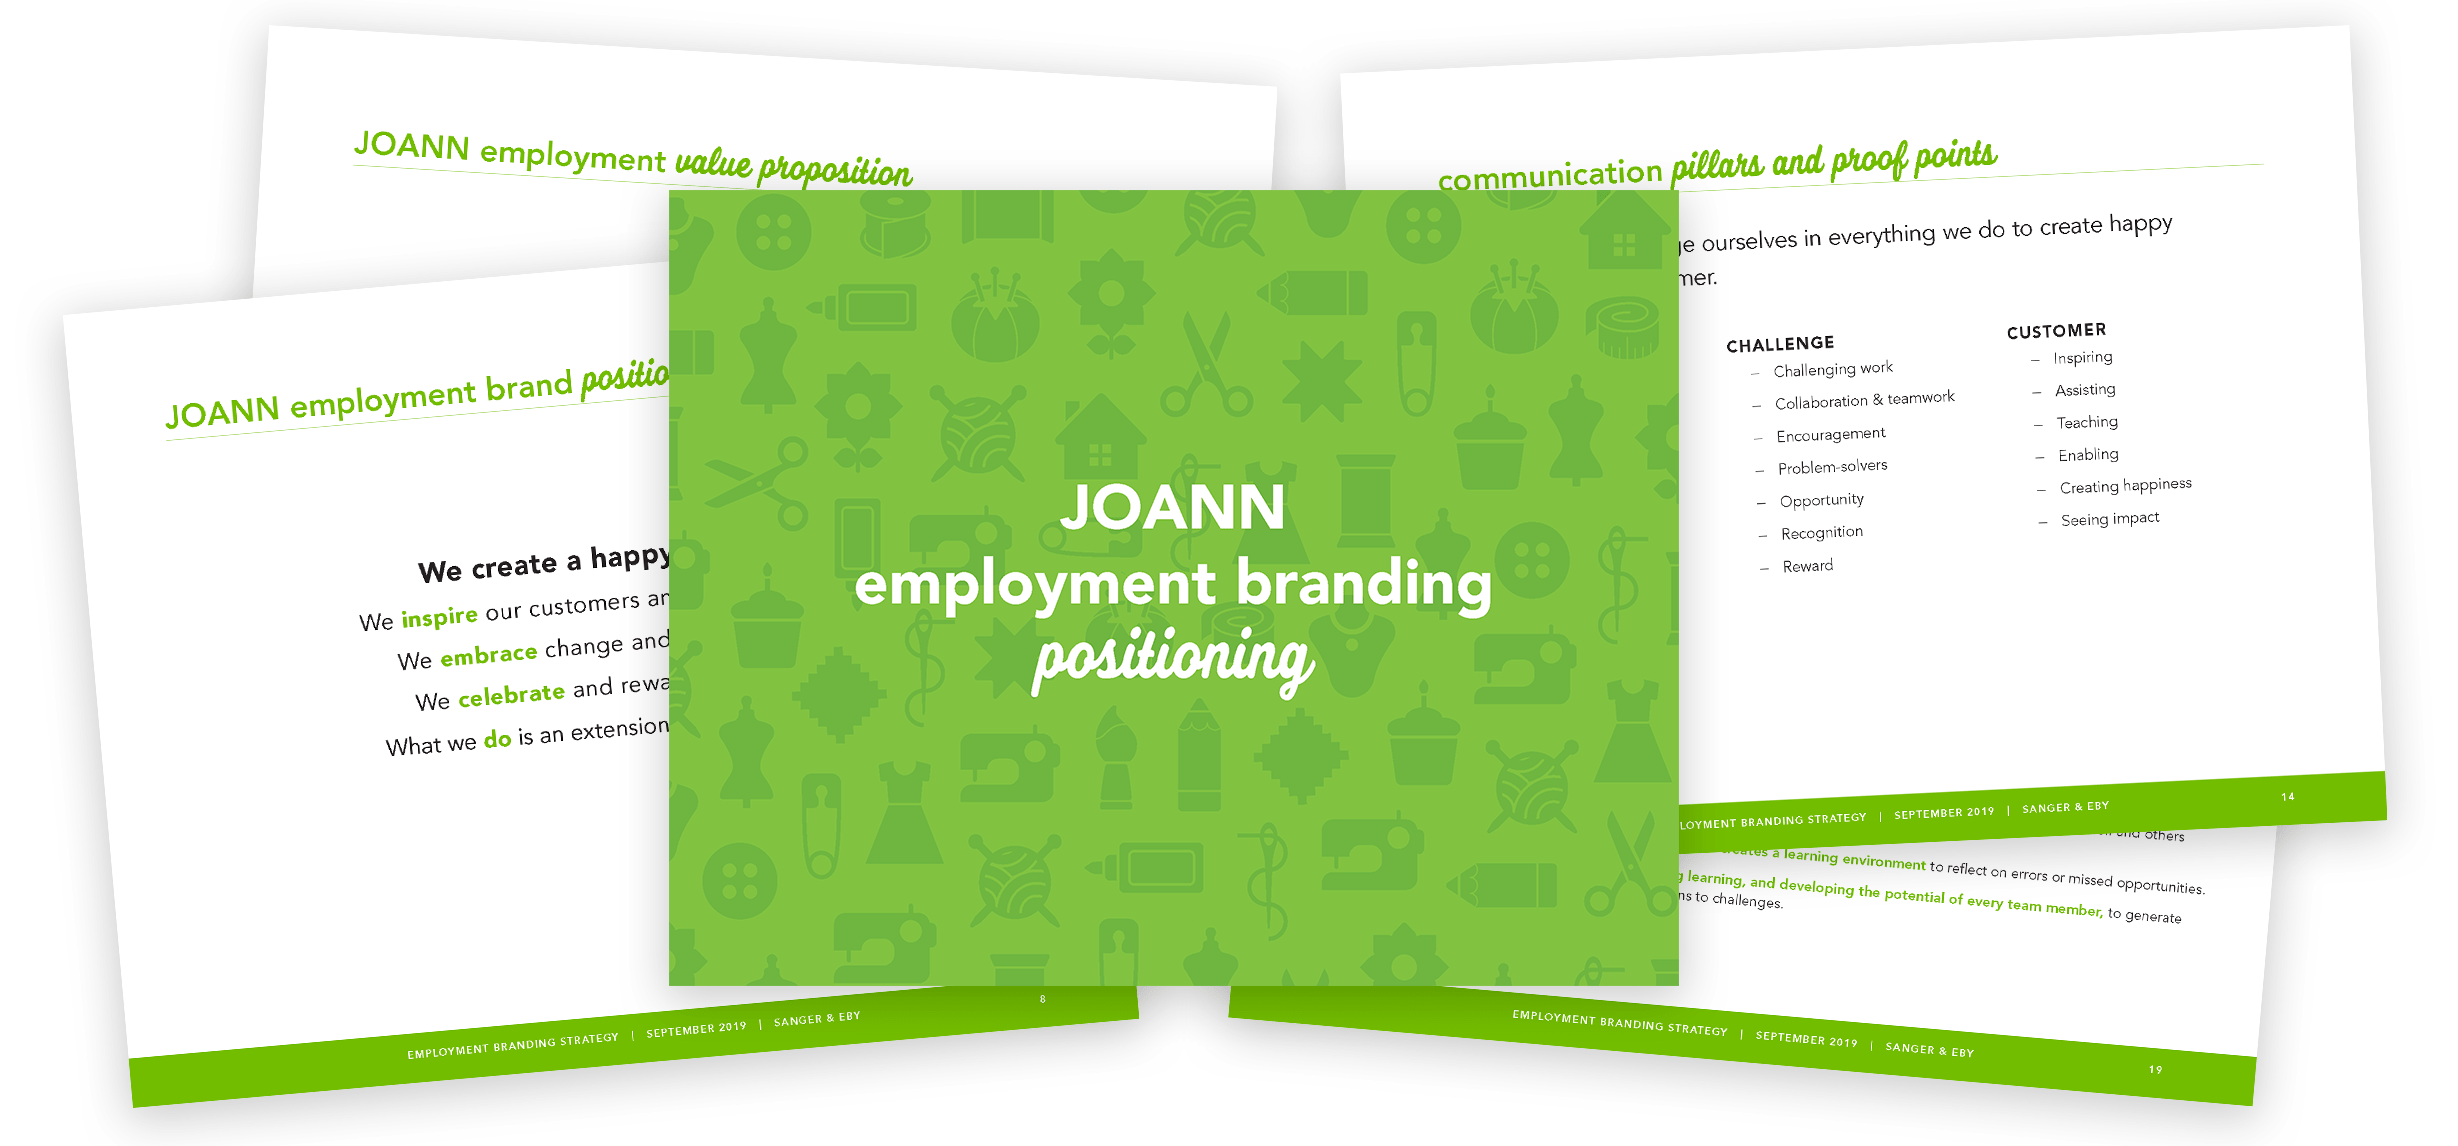 JOANN employer branding presentation